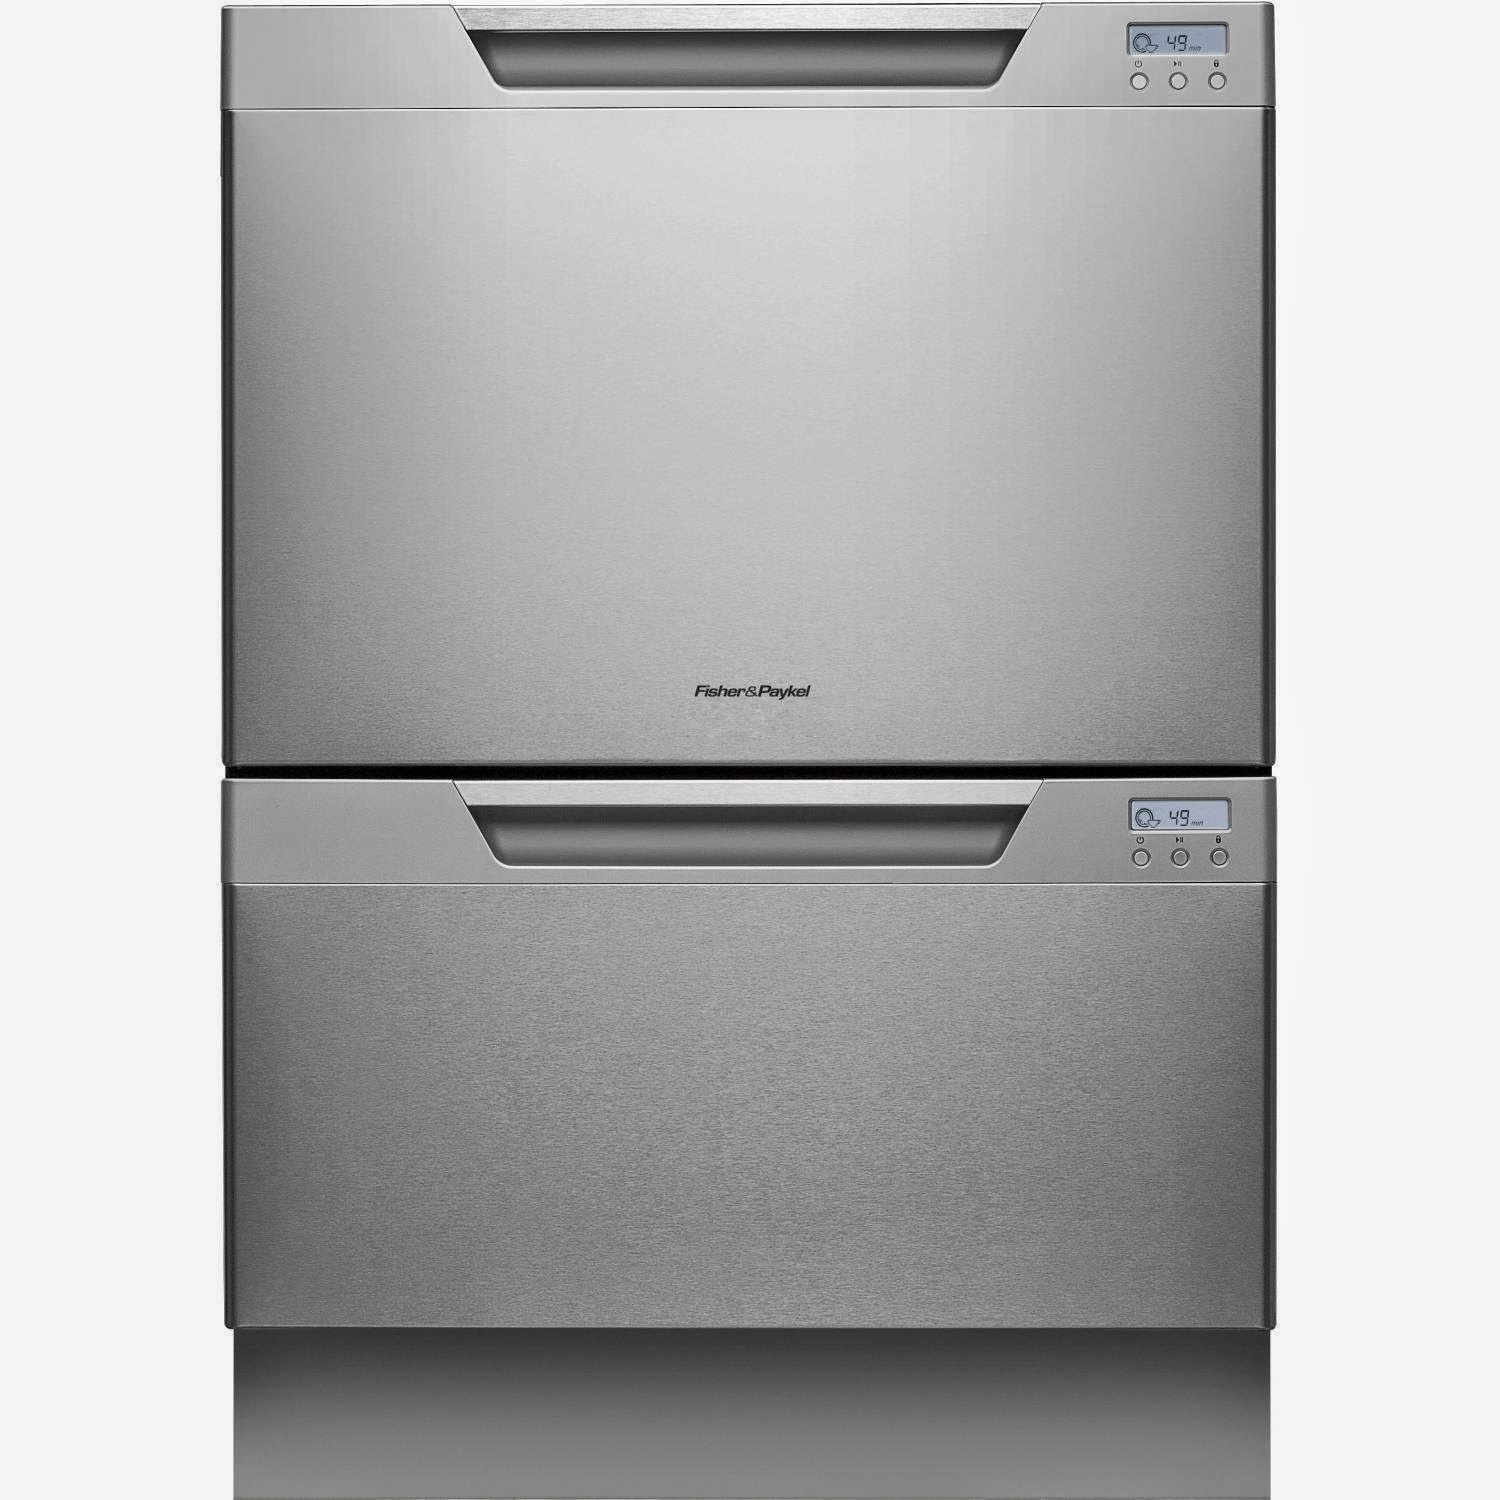 Fisher Paykel Dishdrawer 24 Inches Stainless Steel Semi Integrated Dishwashers